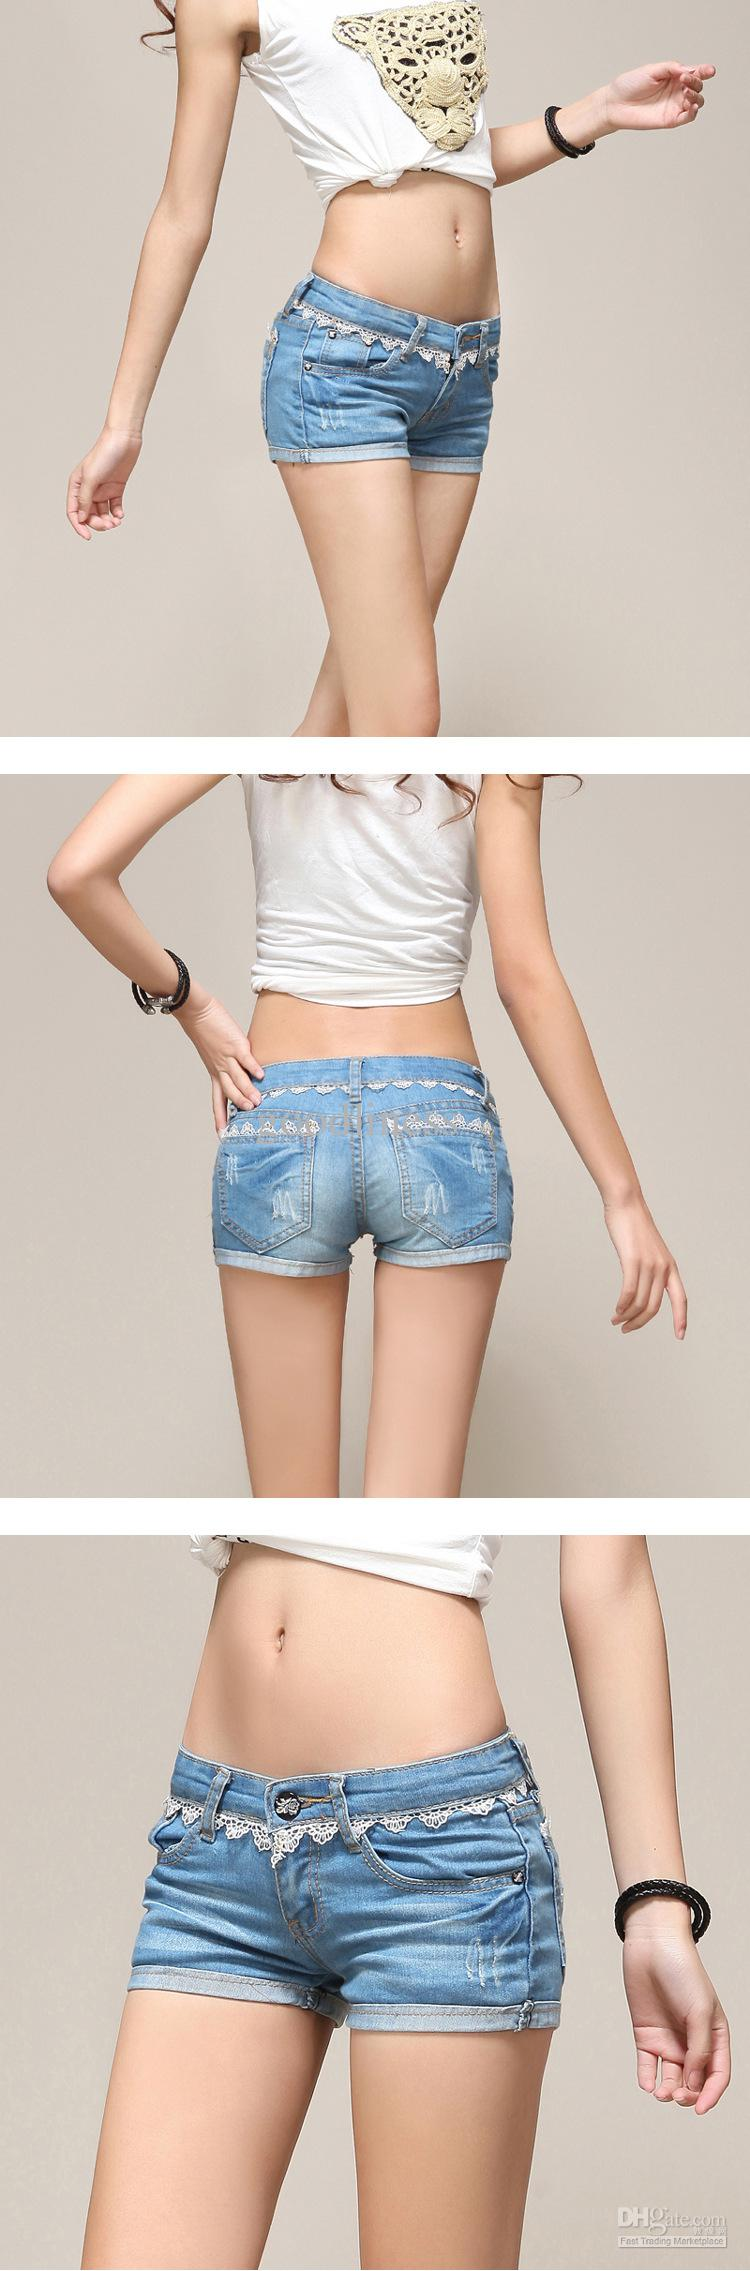 sexy jeans short thigh gap #ProvenAsTheBest | I want these legs ...